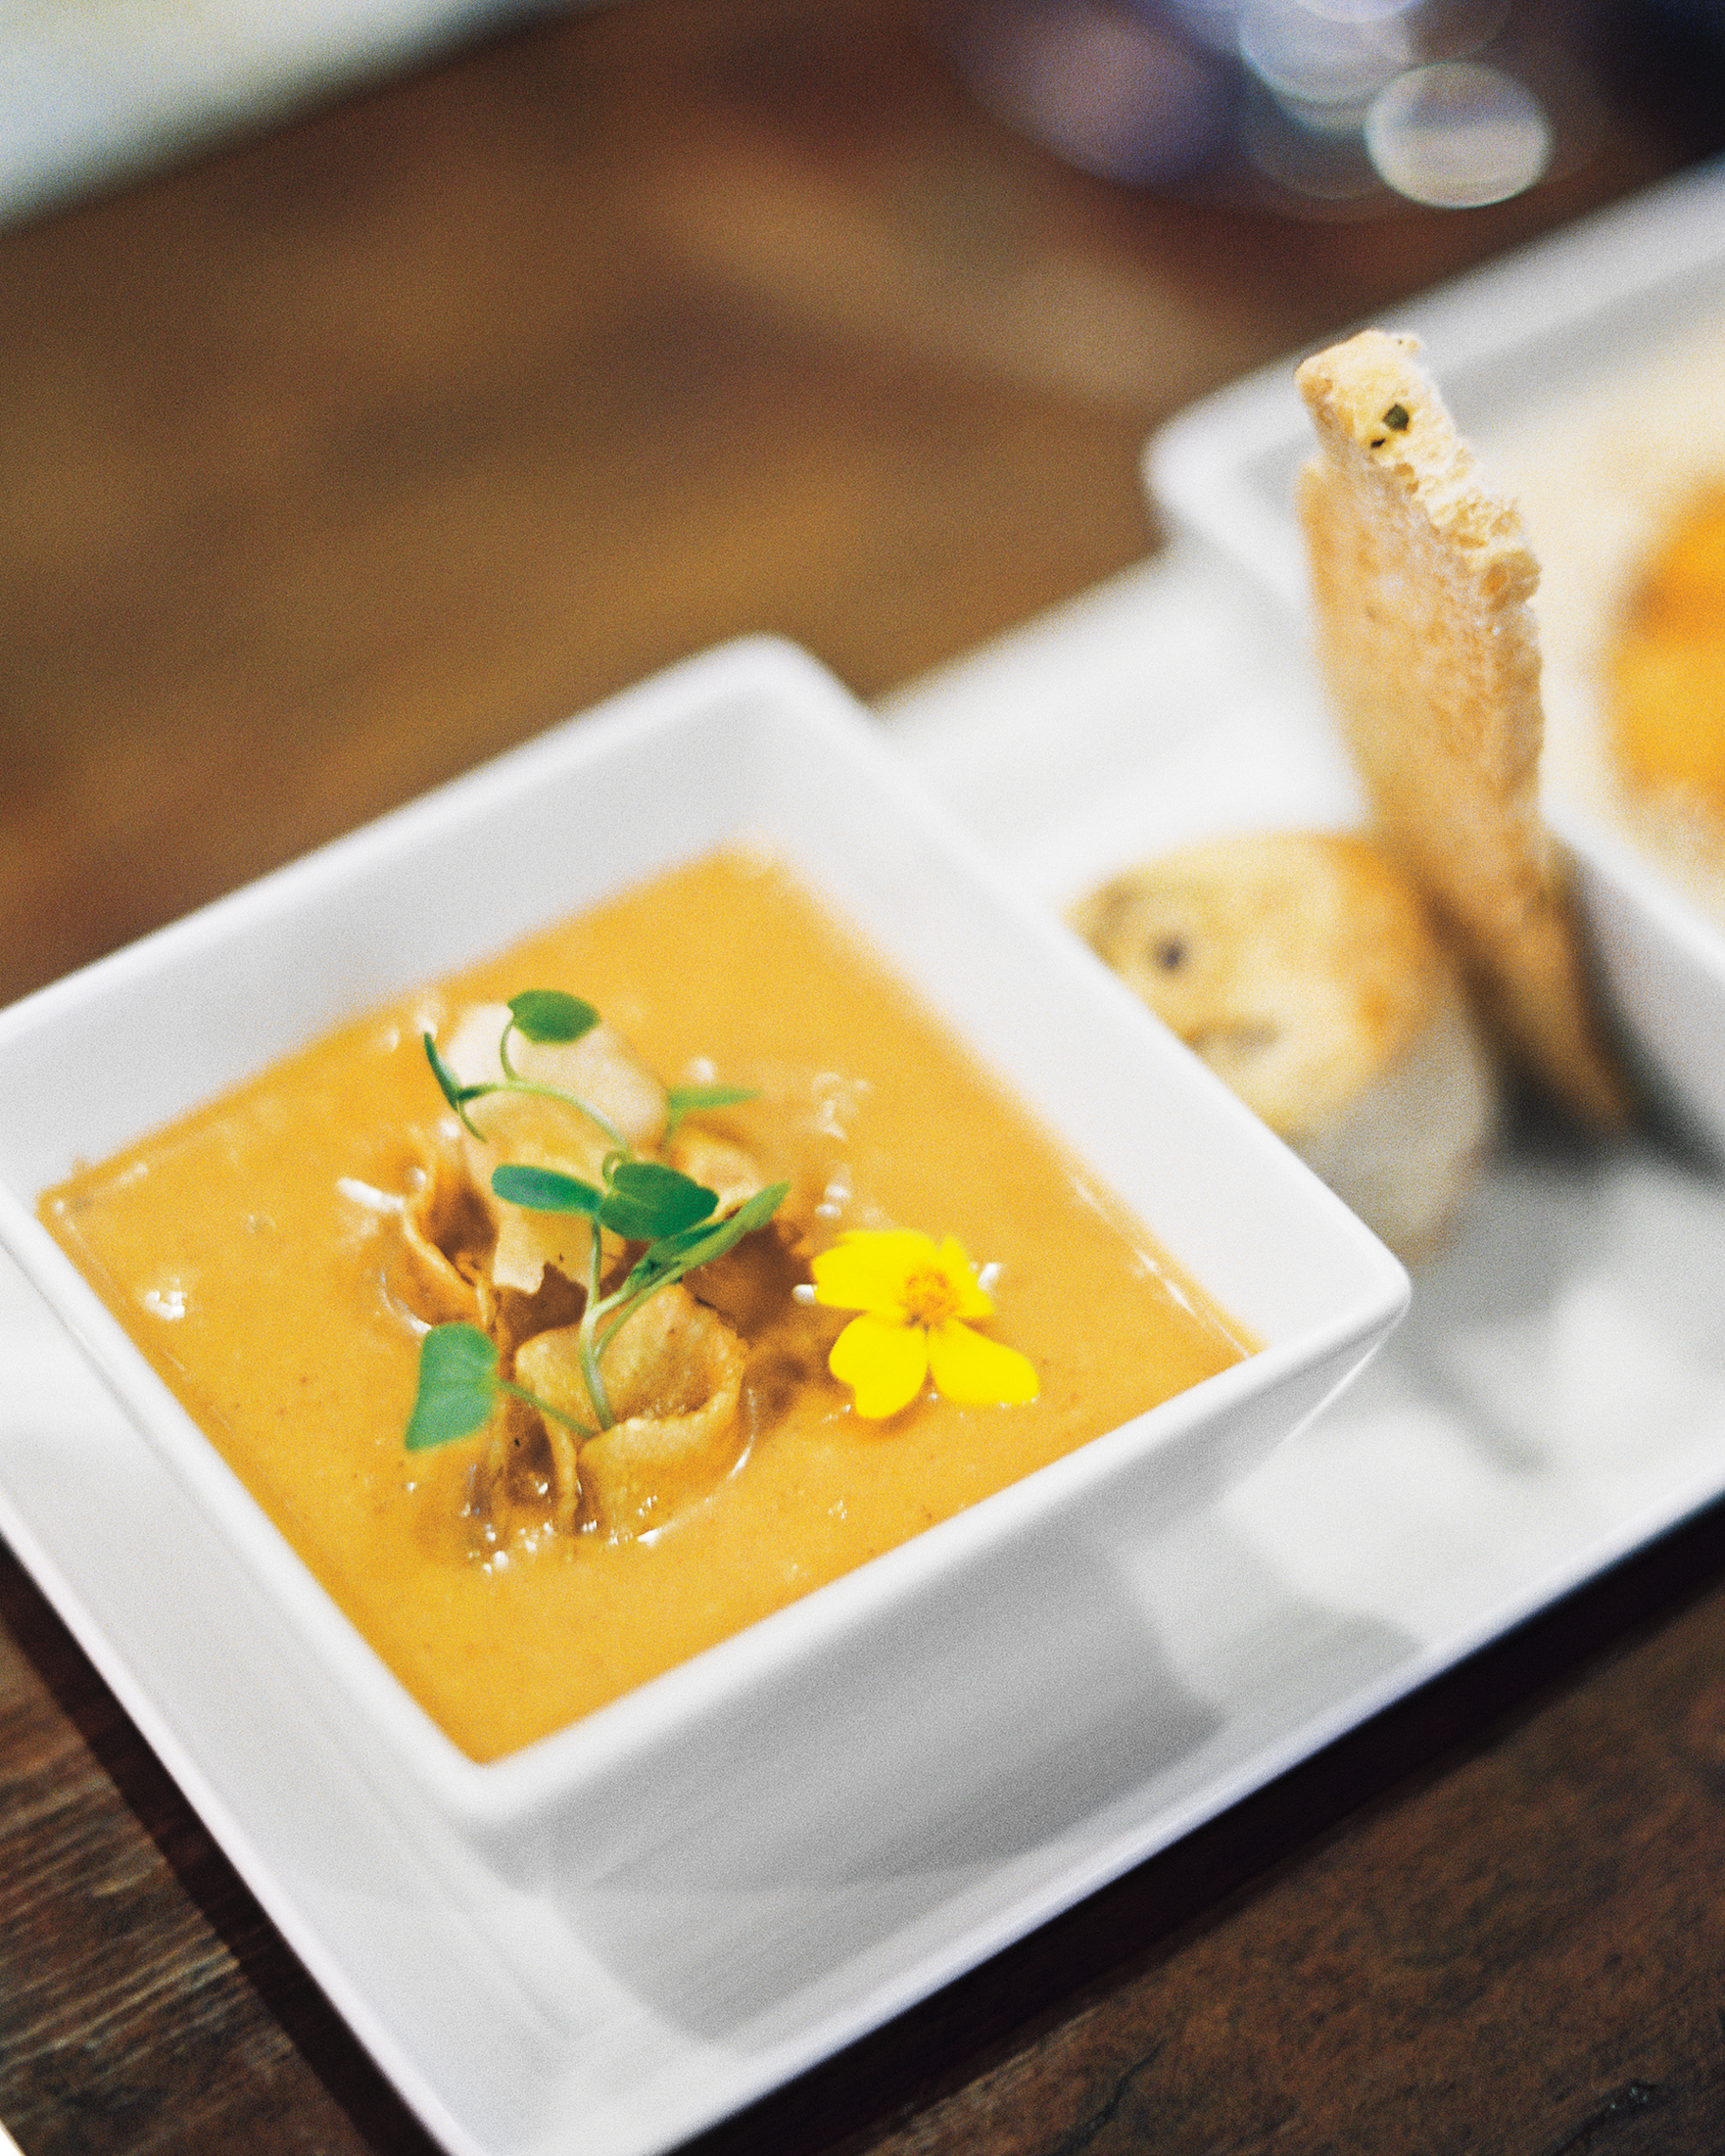 soup-edible-flowers-008866-r1-005-copy-mwds110846.jpg